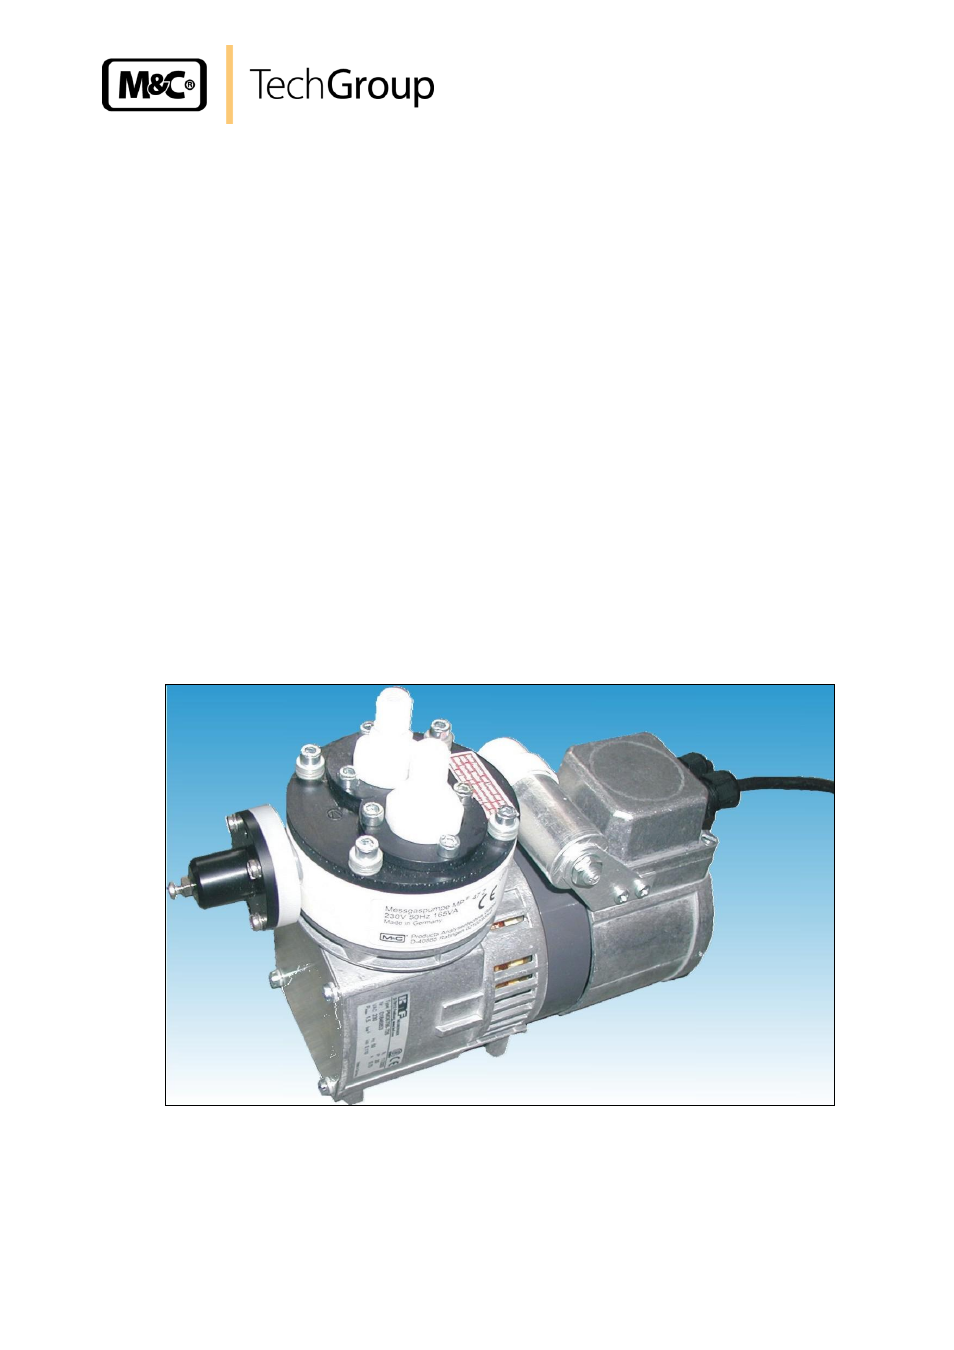 Mc techgroup mp47 z bpr150 operators manual user manual 19 pages ccuart Images